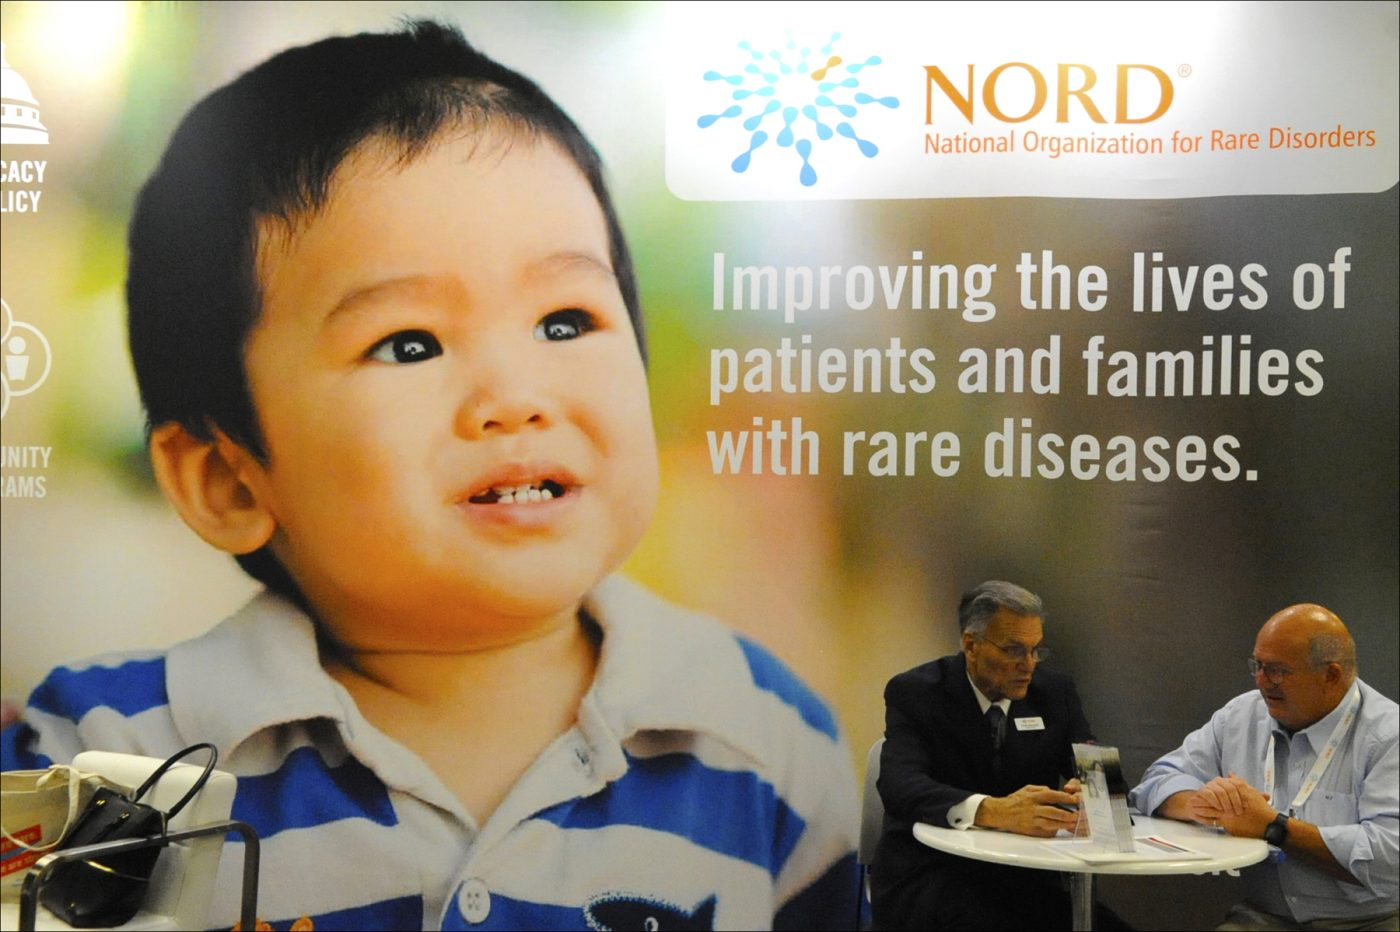 NORD poster 2017 summit